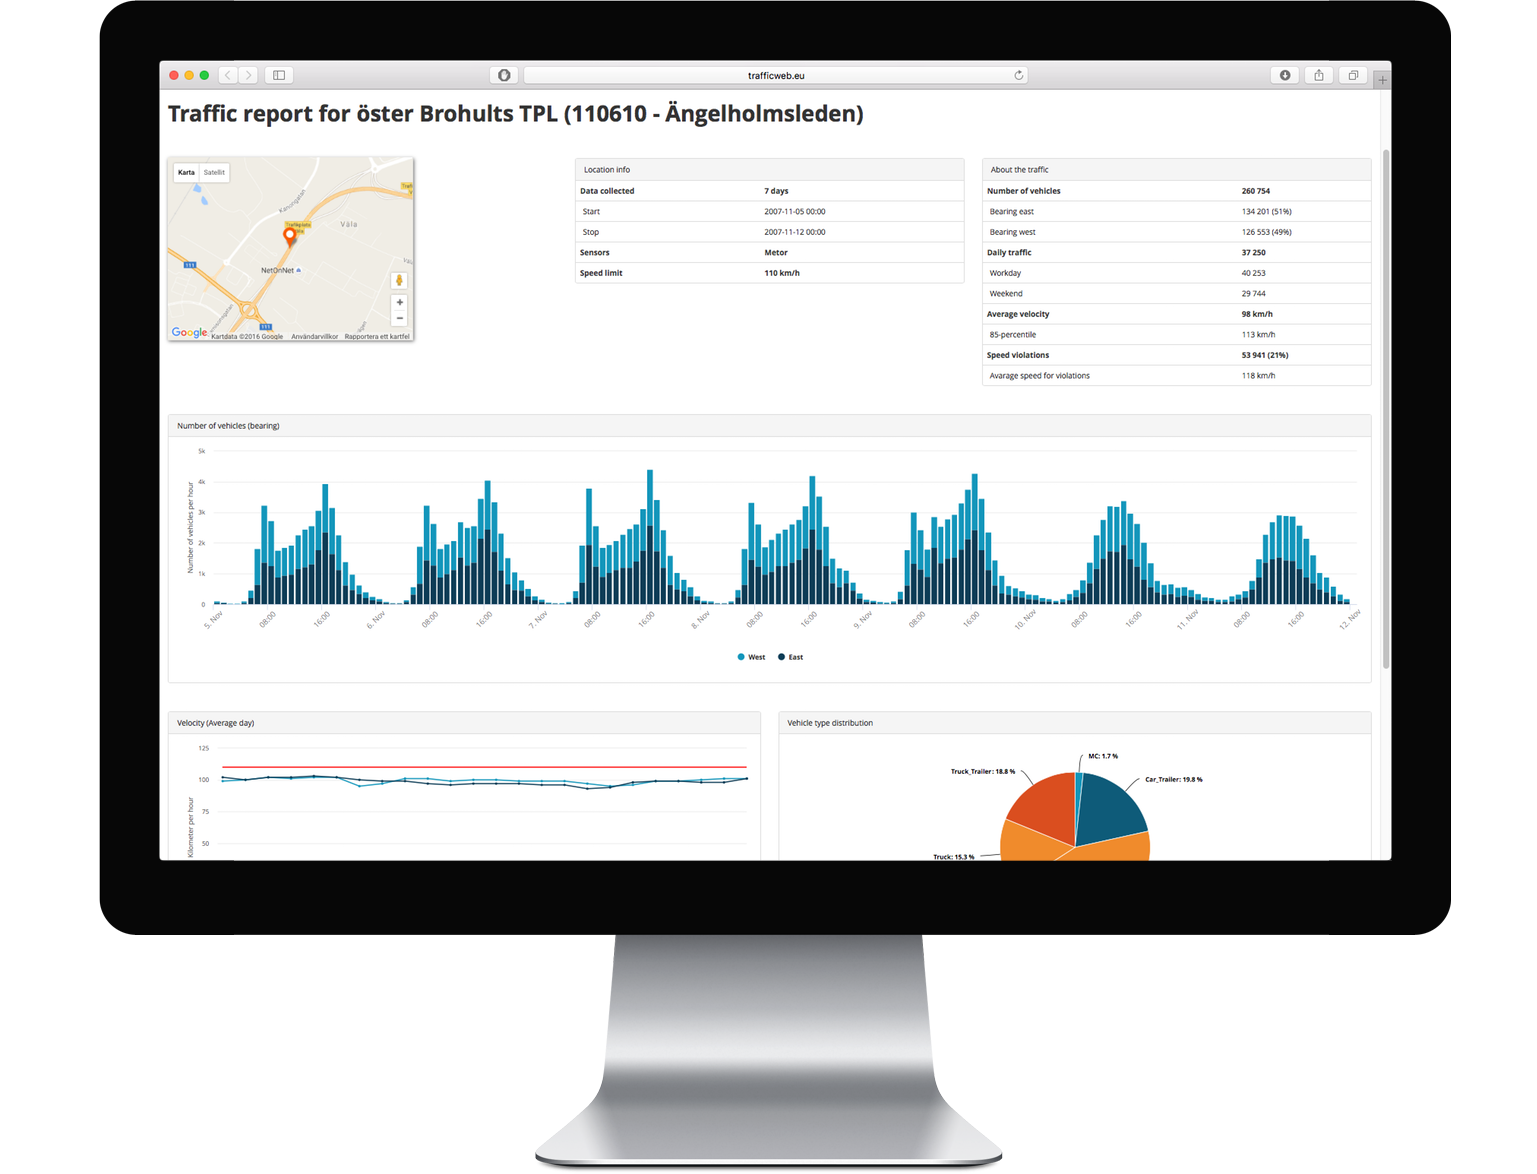 Web based tool for traffic data collection and analysis